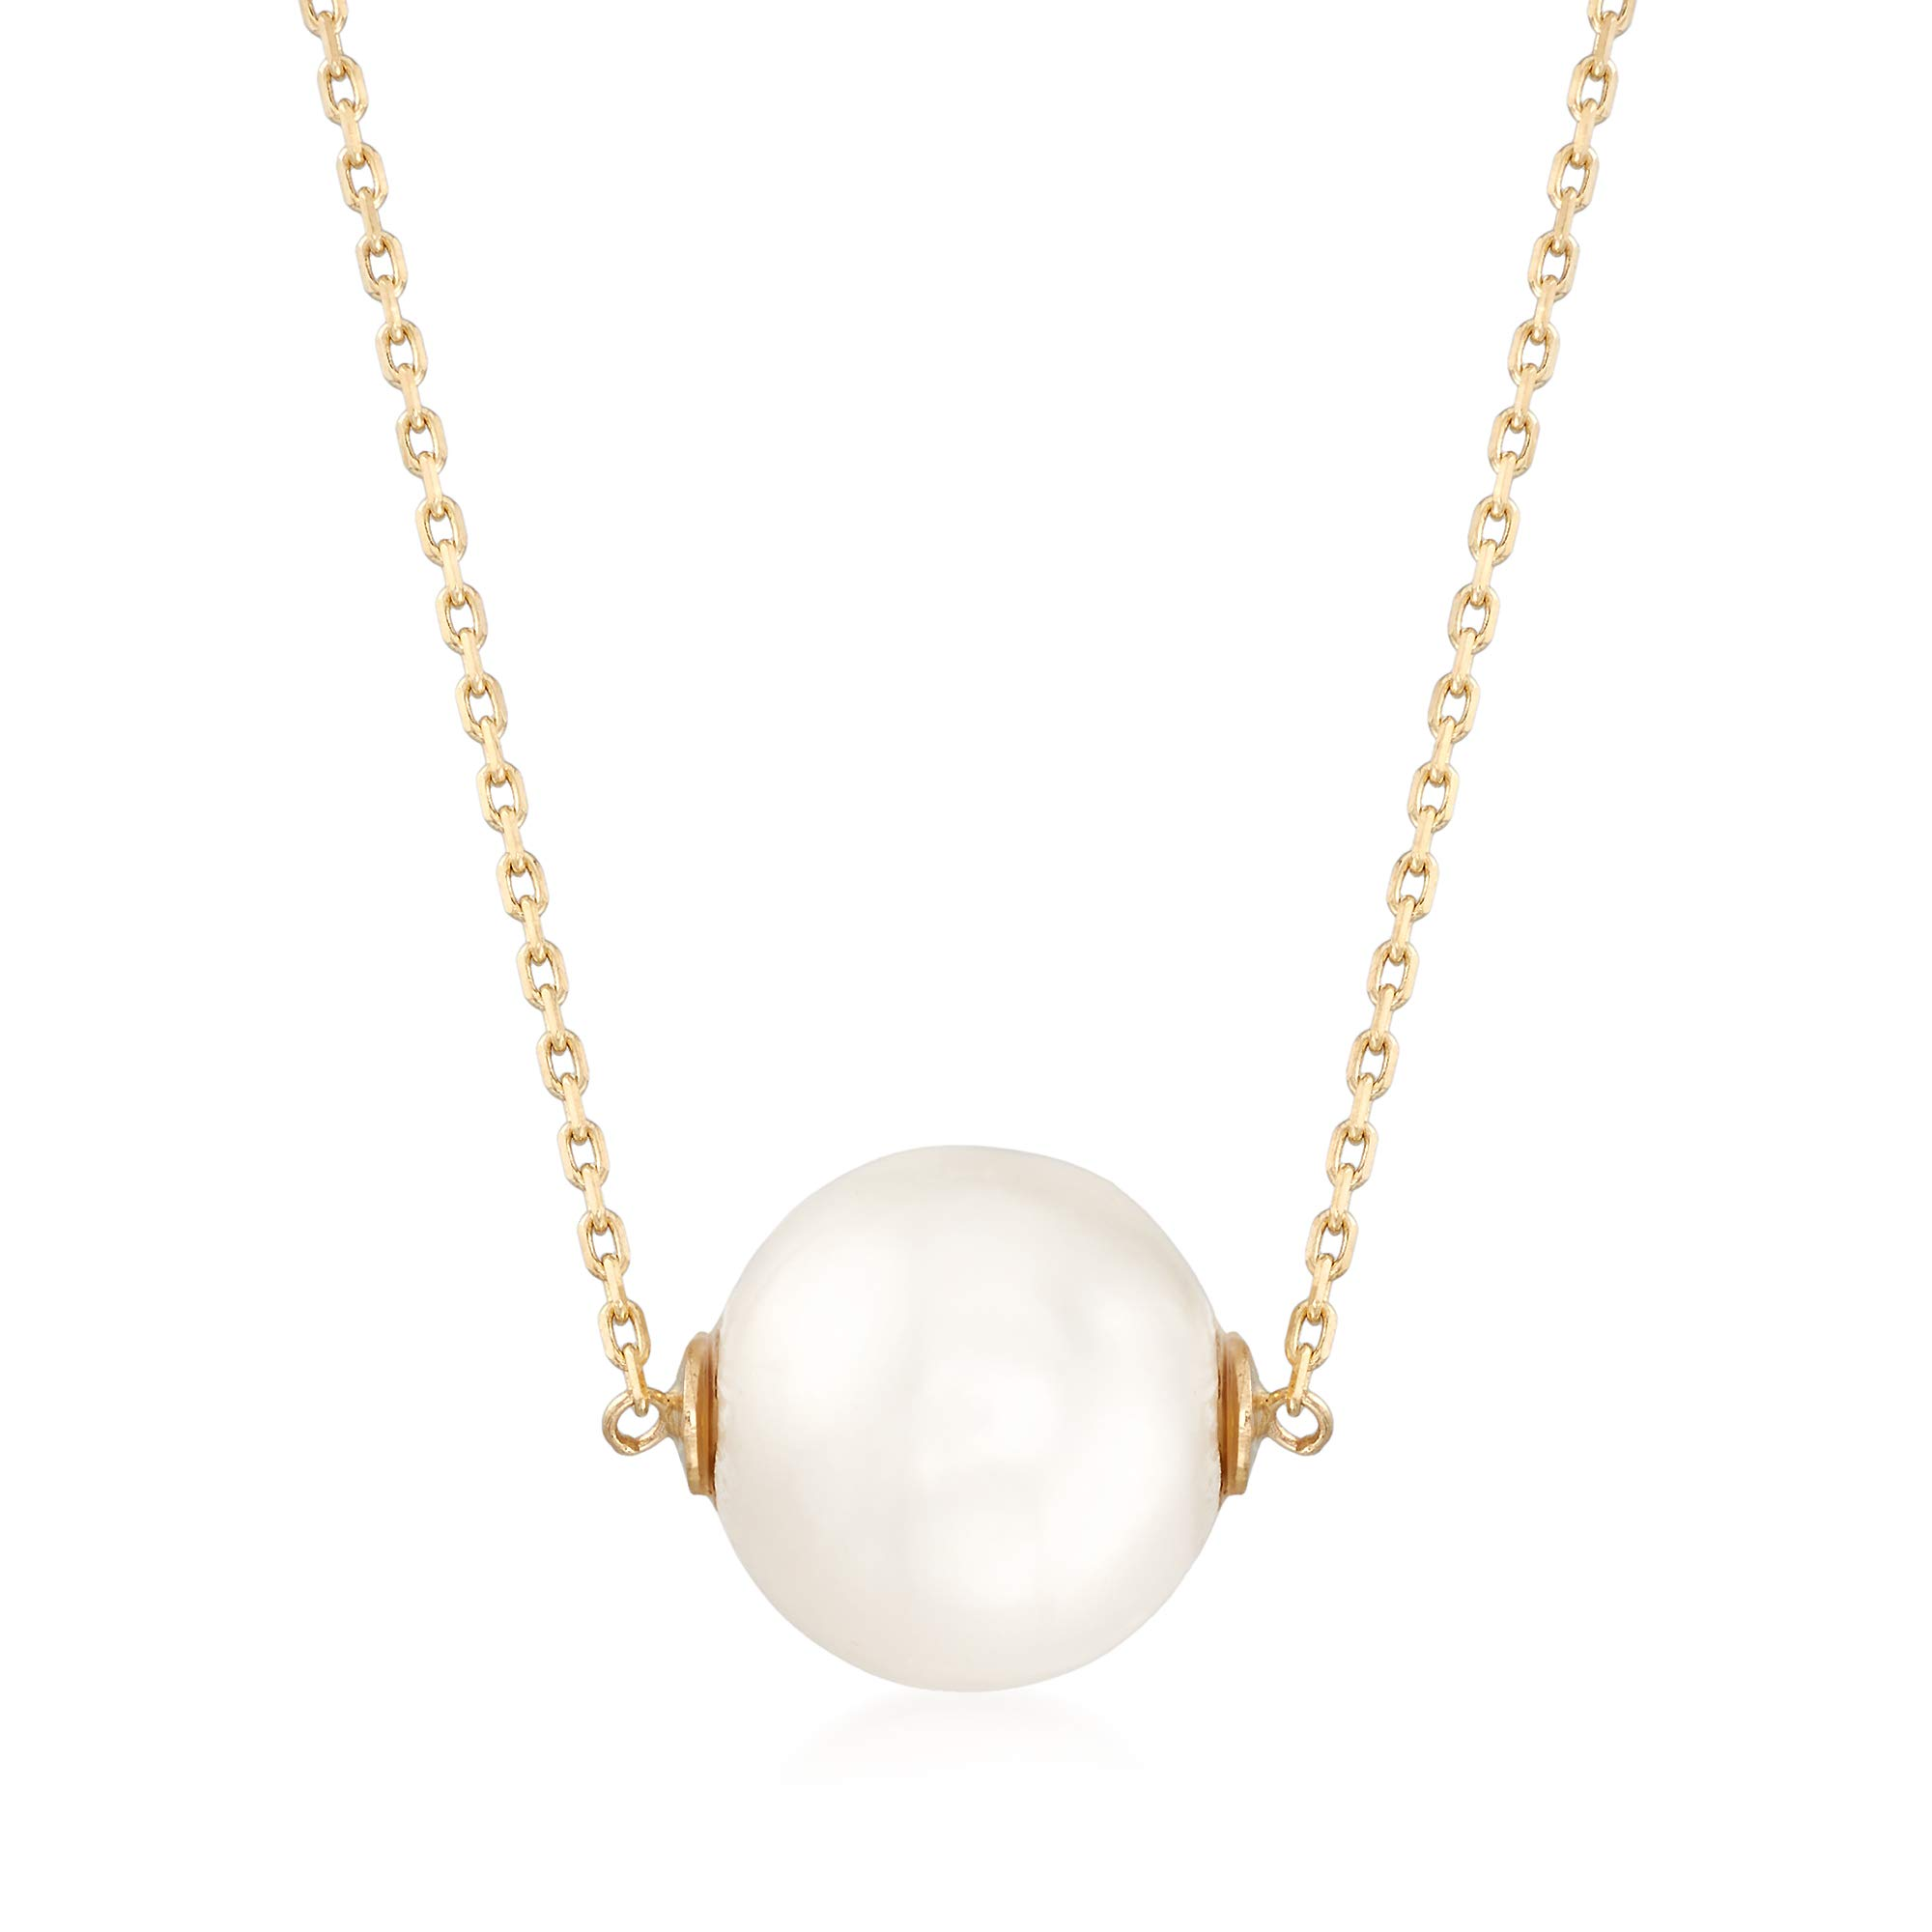 Ross-Simons 11mm Cultured Pearl Necklace in 14kt Yellow Gold by Ross-Simons